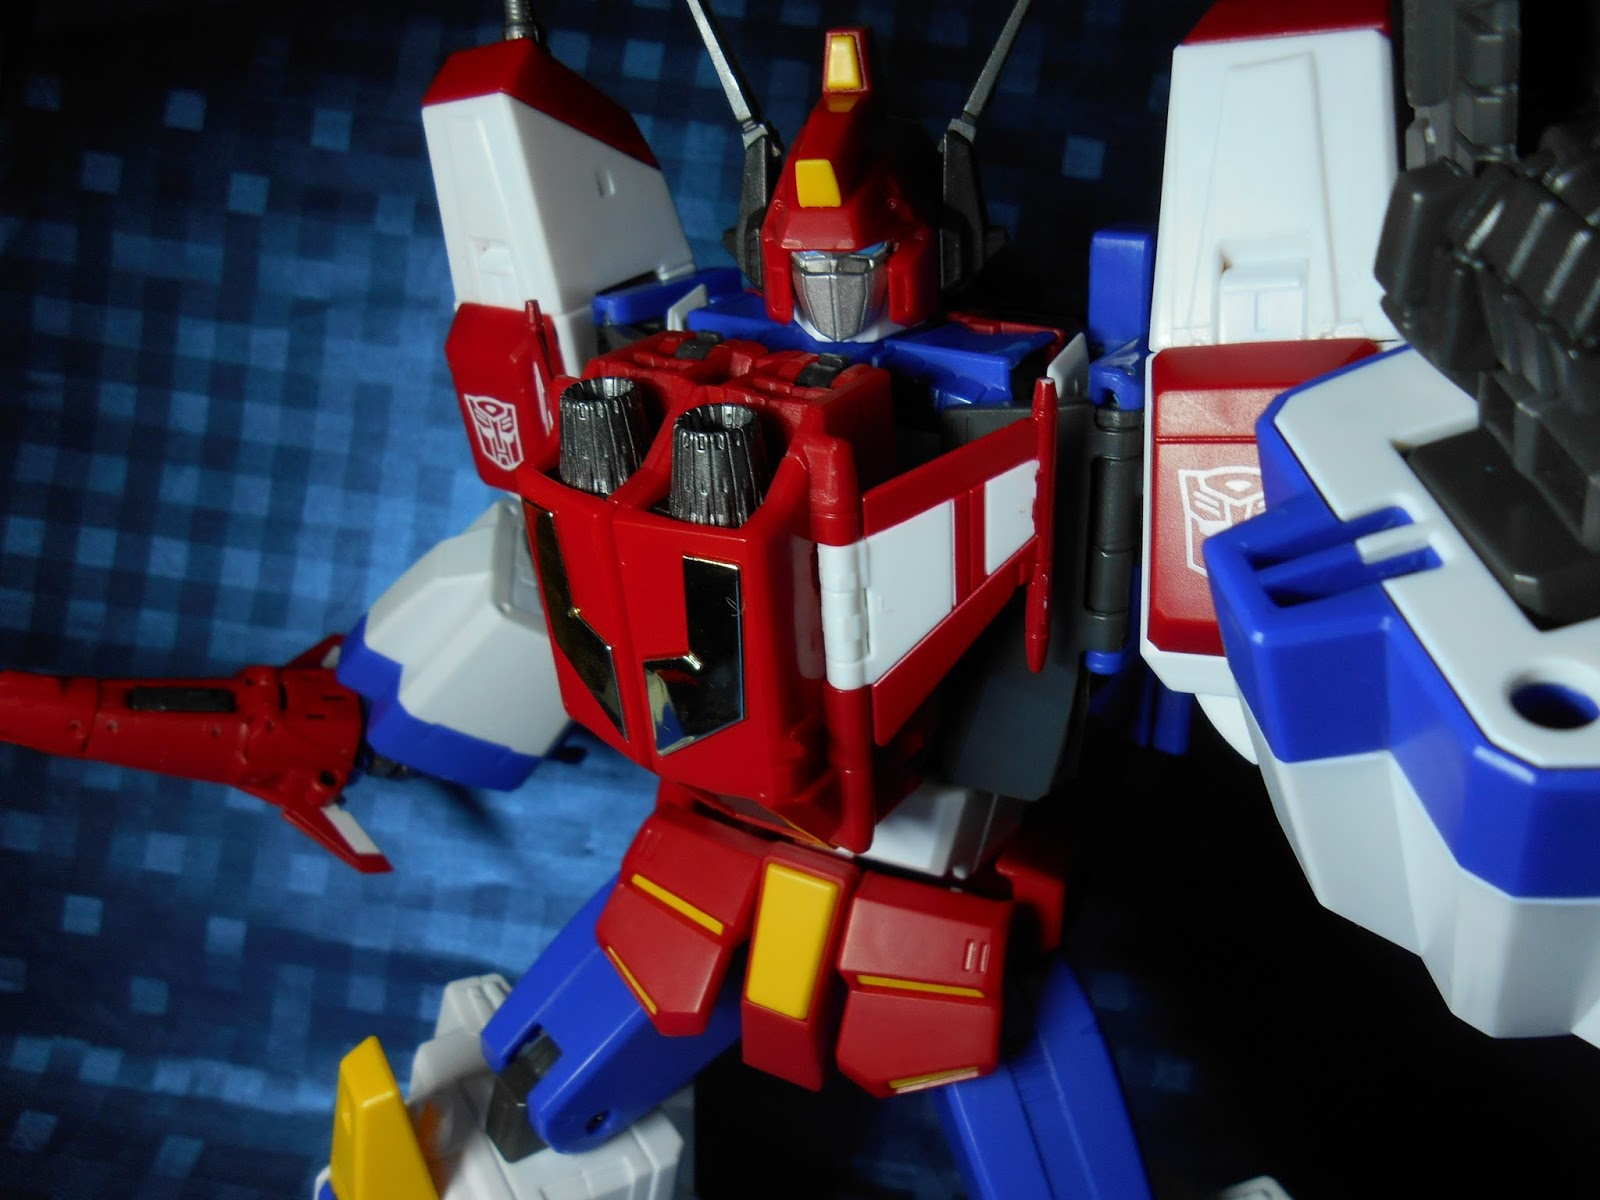 http://murakami-night.blogspot.com/2015/04/takara-masterpiece-24-part2-star-saber-review.html